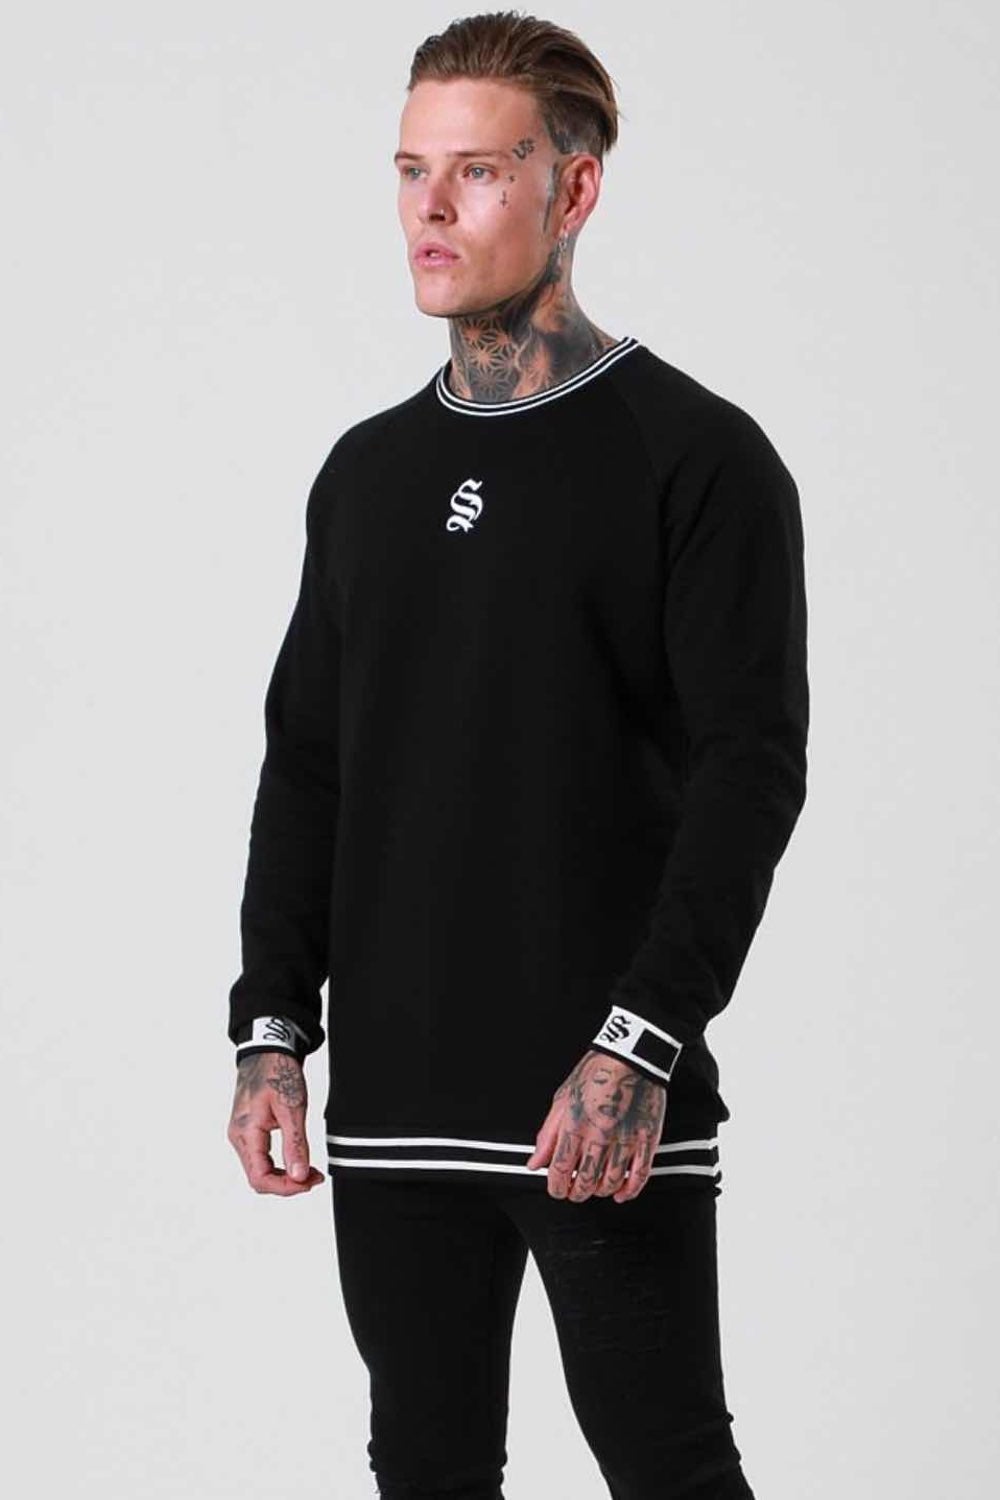 Sinners Attire Hypa Sweater - Black - 1